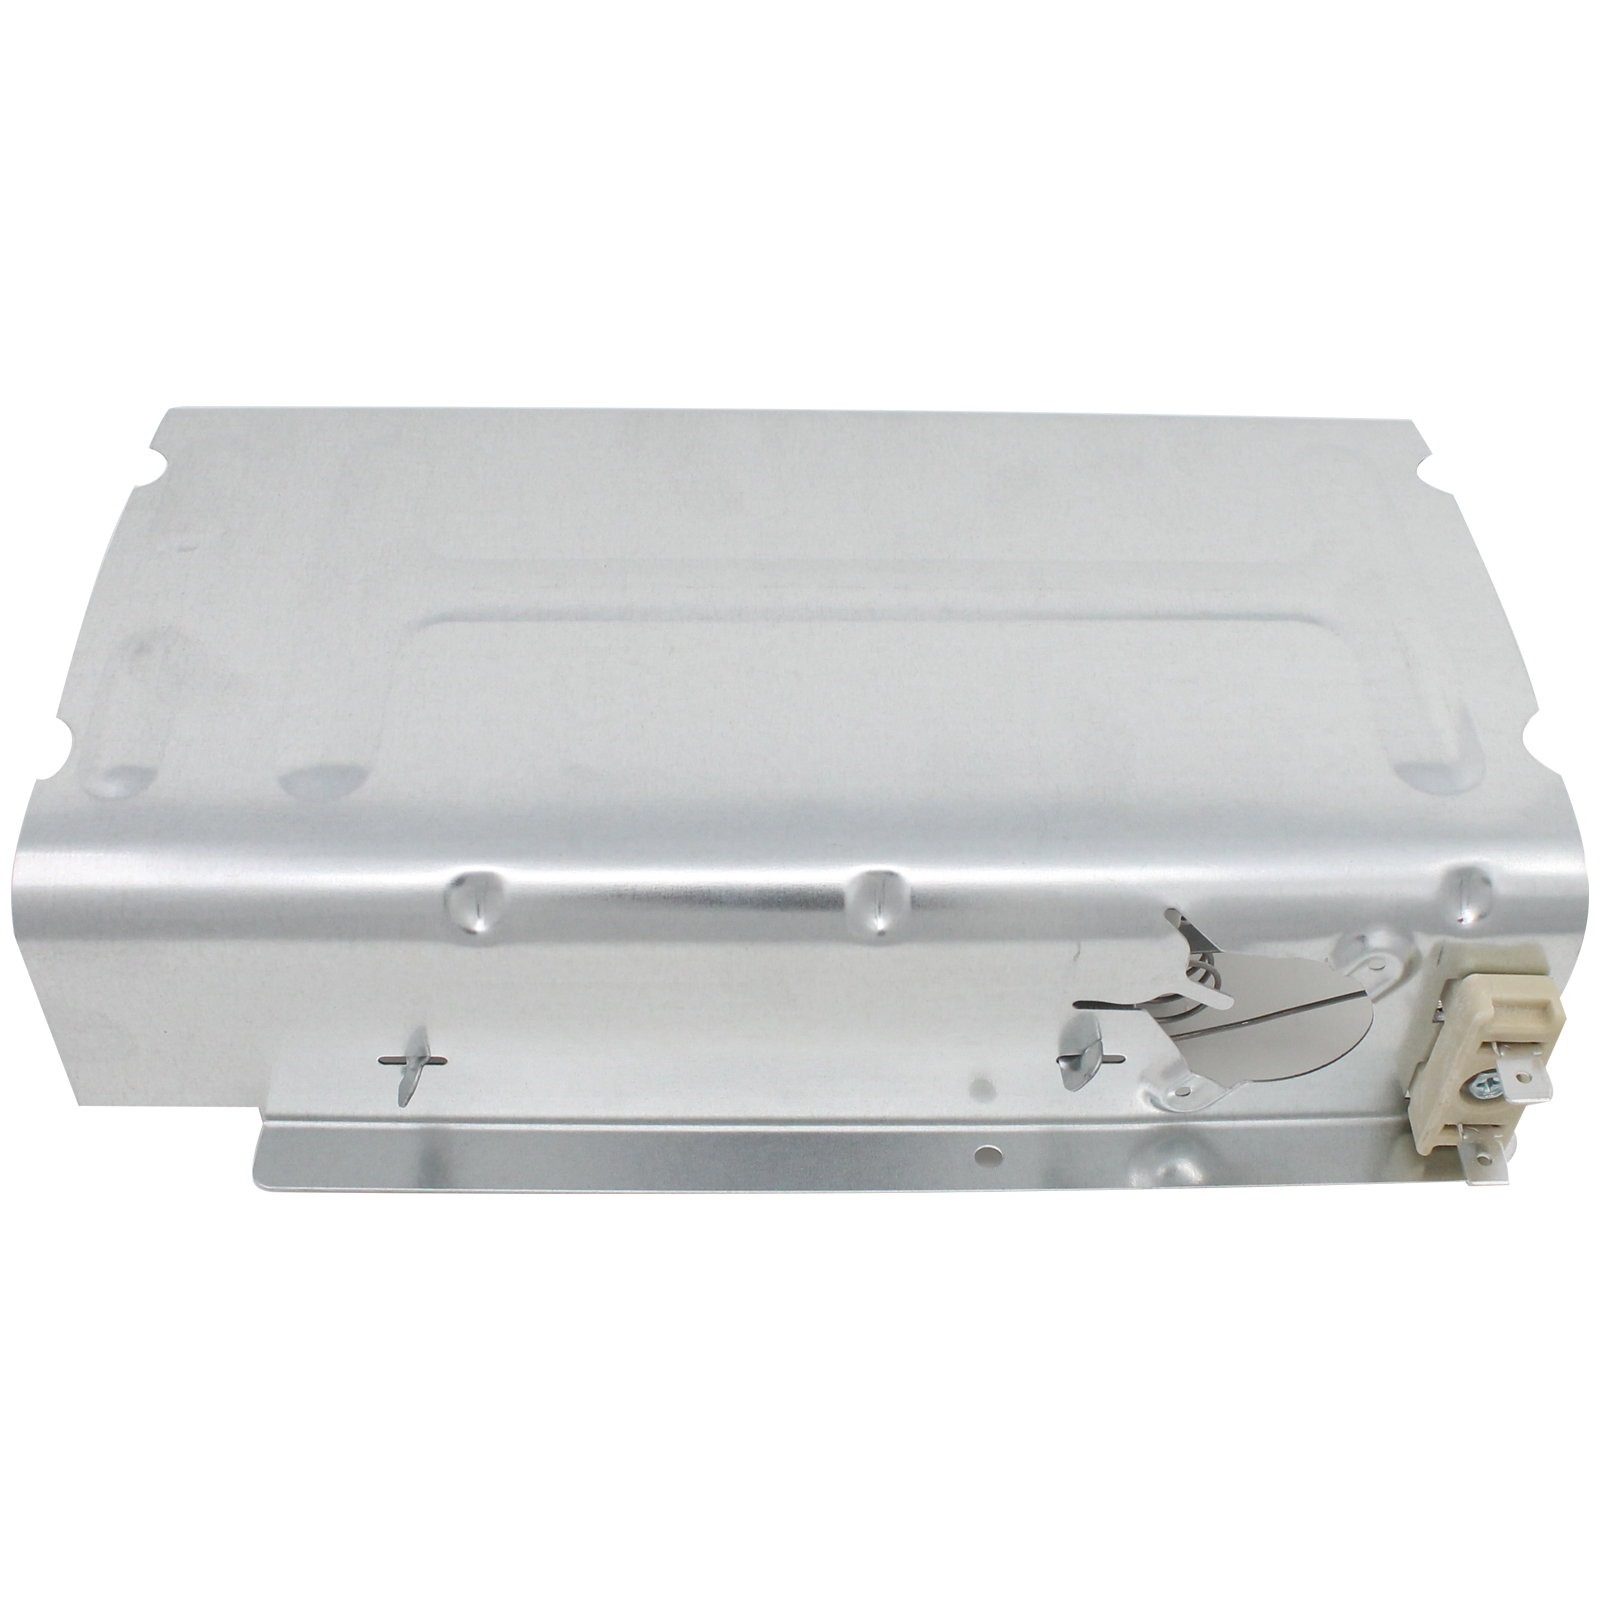 279838 Dryer Heating Element Replacement for Kenmore / Sears 11096566410 Dryer - Compatible with 279838 Heater Element - UpStart Components Brand - image 2 of 4